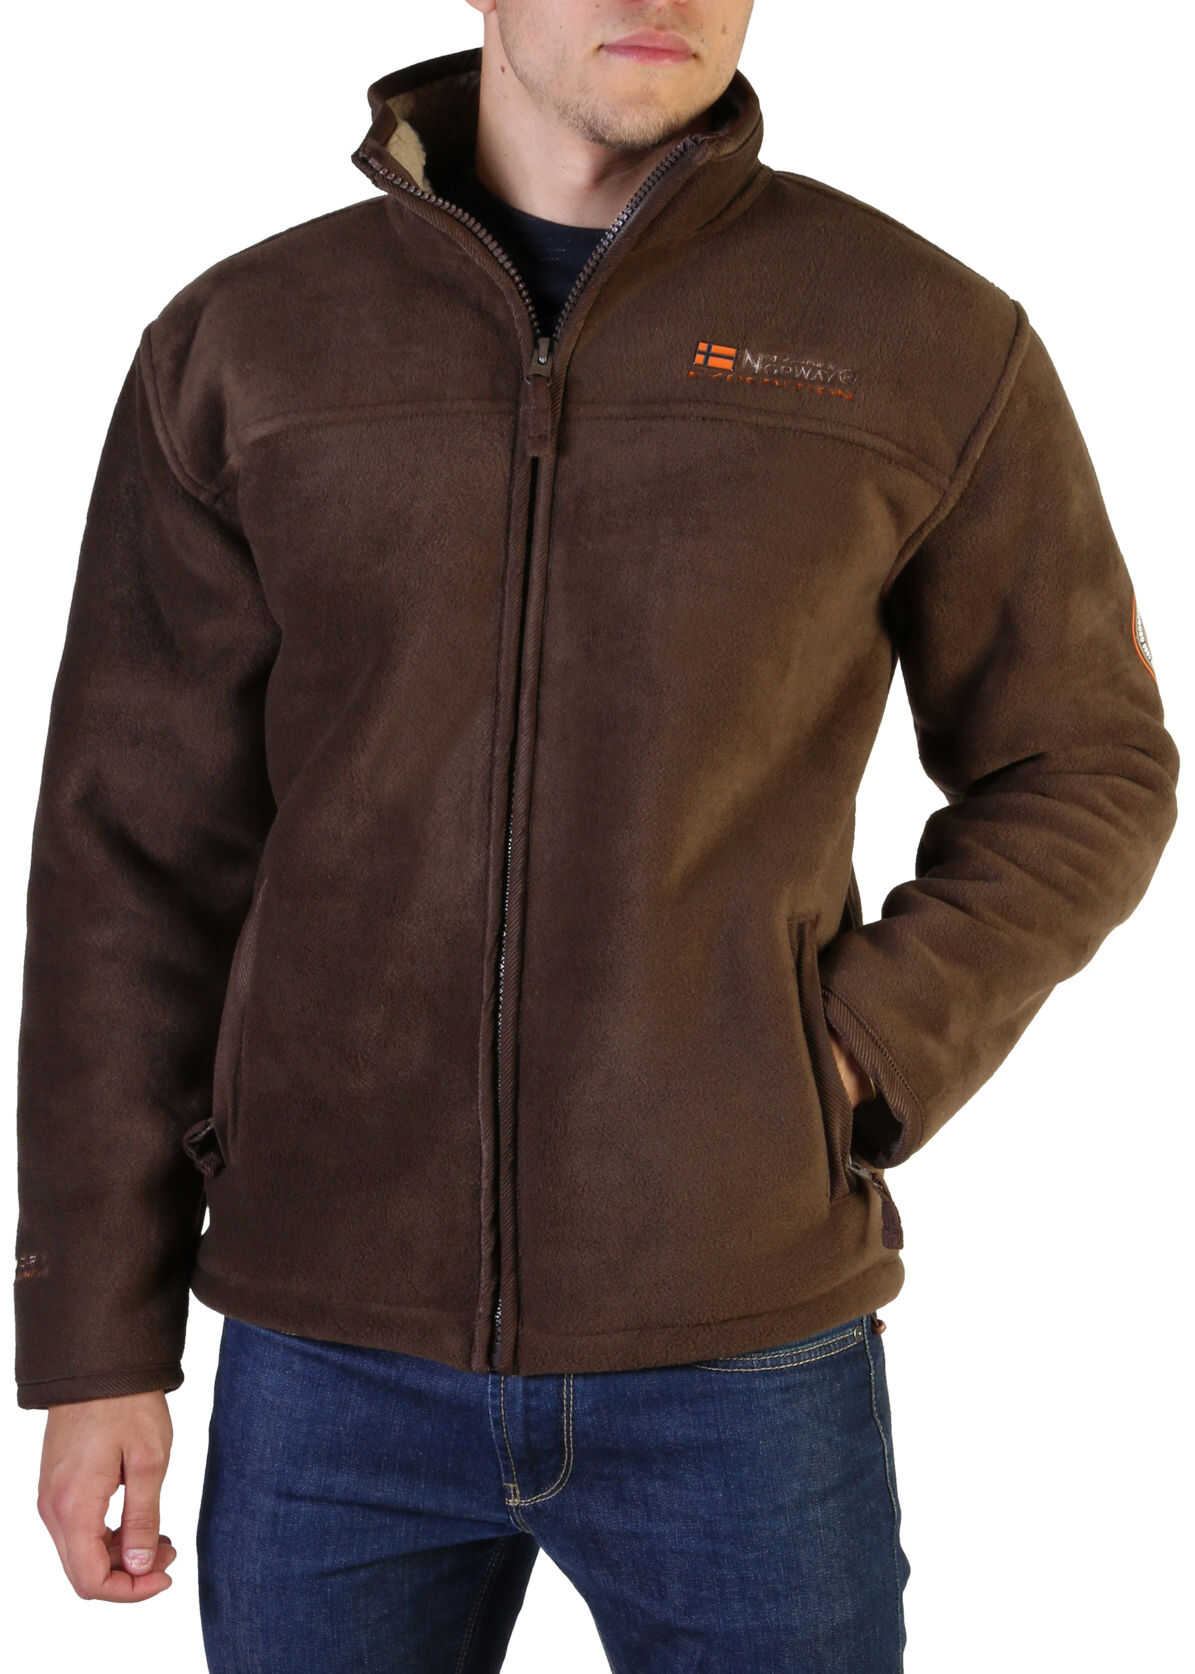 Geographical Norway Usine_Man* BROWN